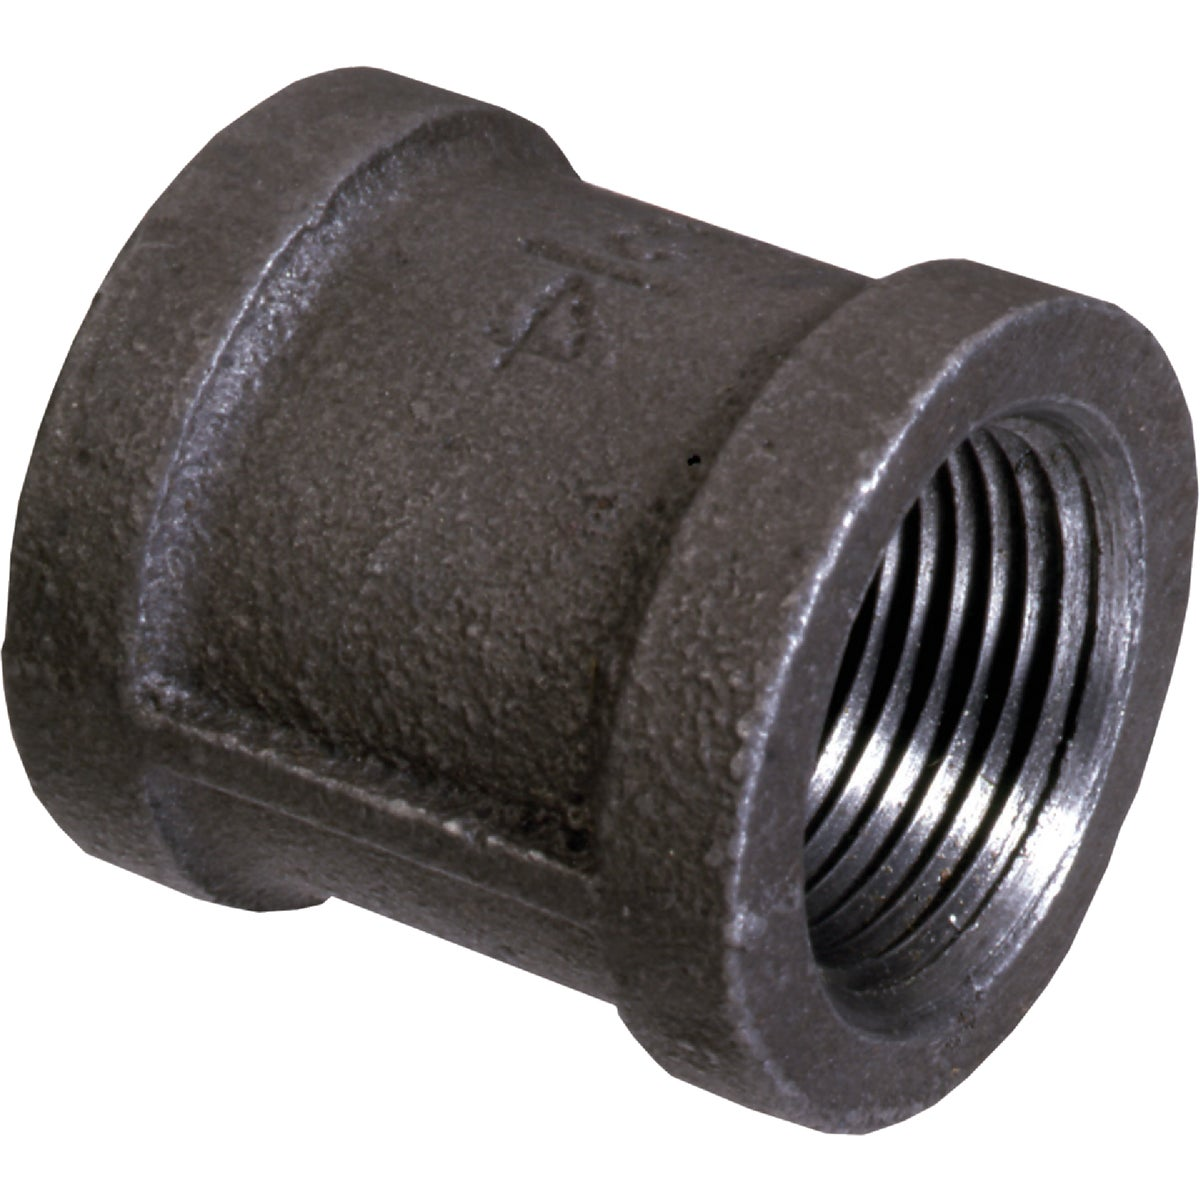 "1/2"" BLACK COUPLING - 521-203BG by Mueller B K"